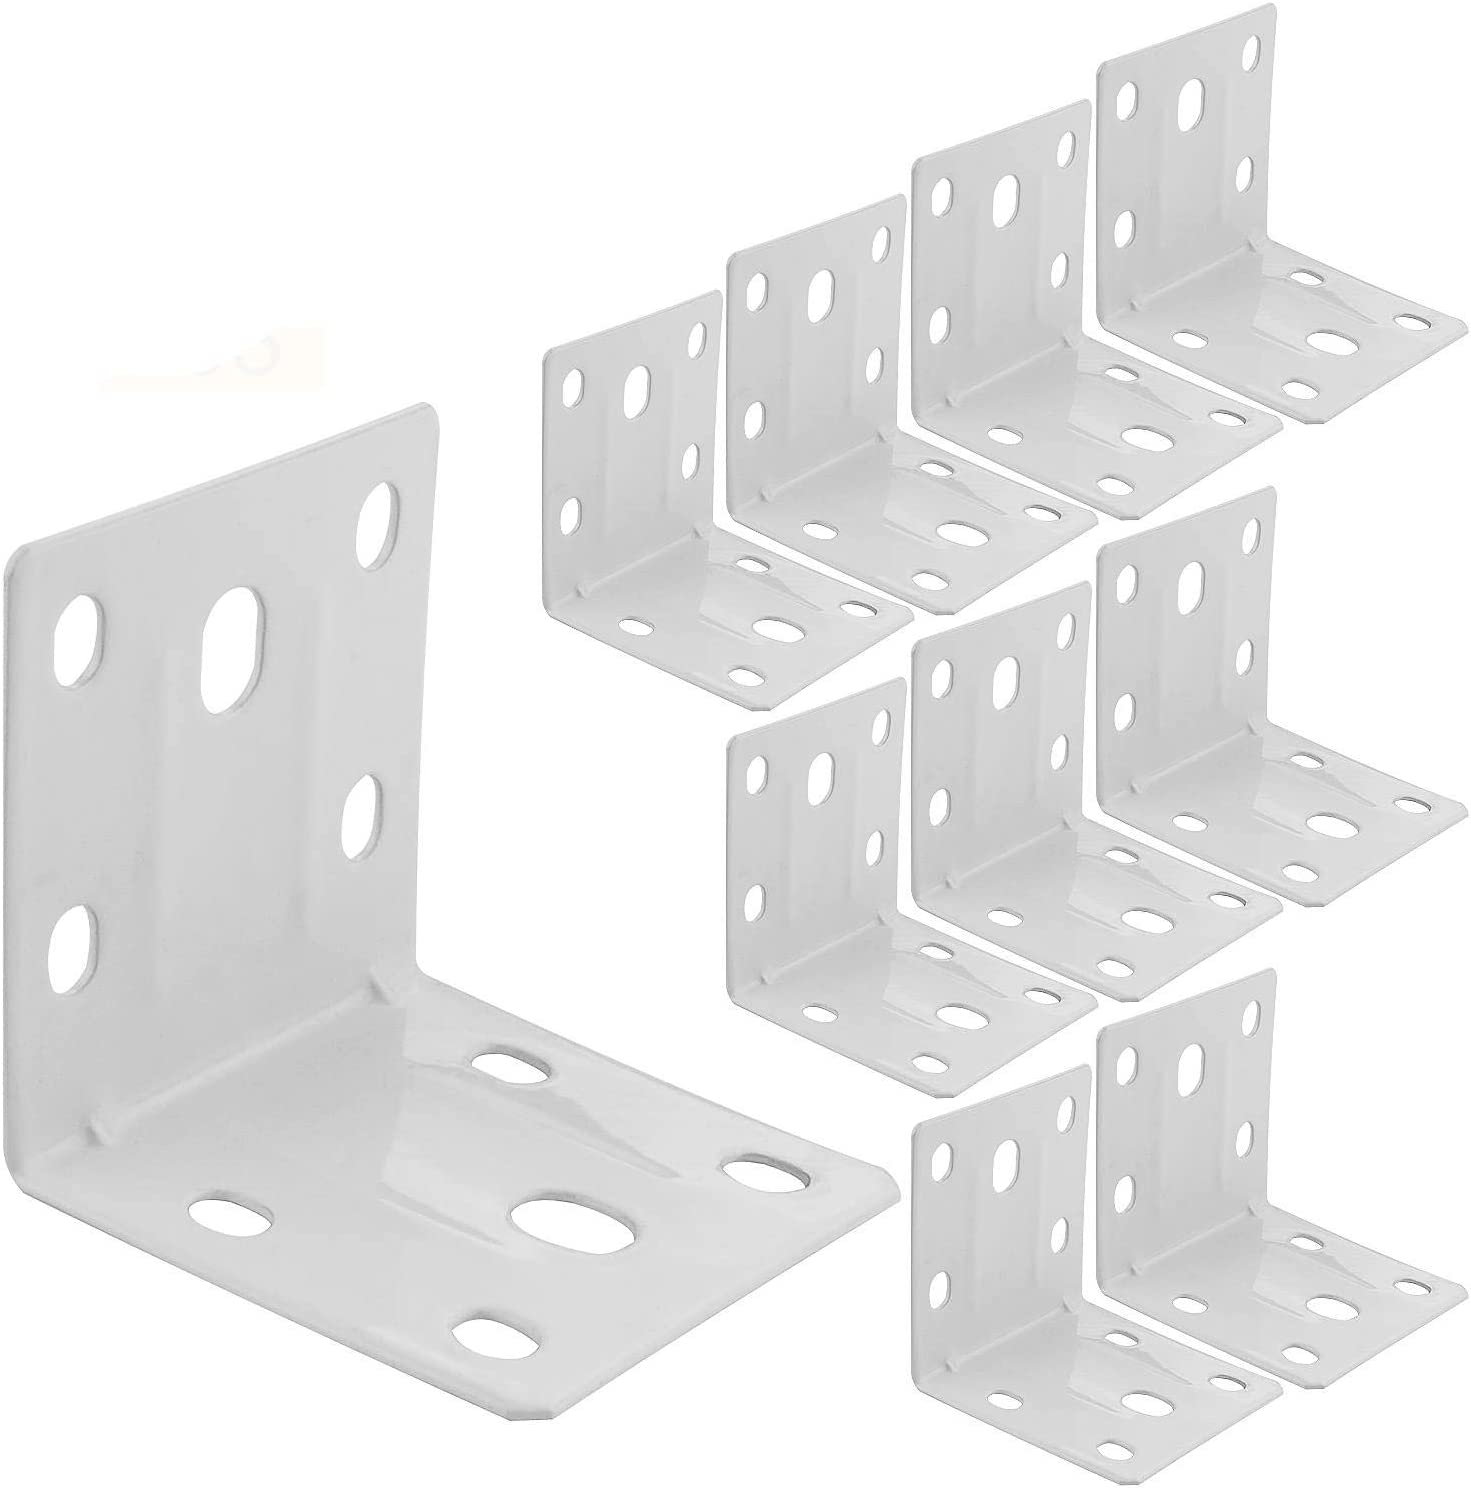 Furniture and Cabinet Round End 50MM X 50MM X 50MM L Bracket Cast Iron for Furniture Corner Steel Joint Right Angle Shelf Support Corner for Shelves 36 PCS White Corner Brace